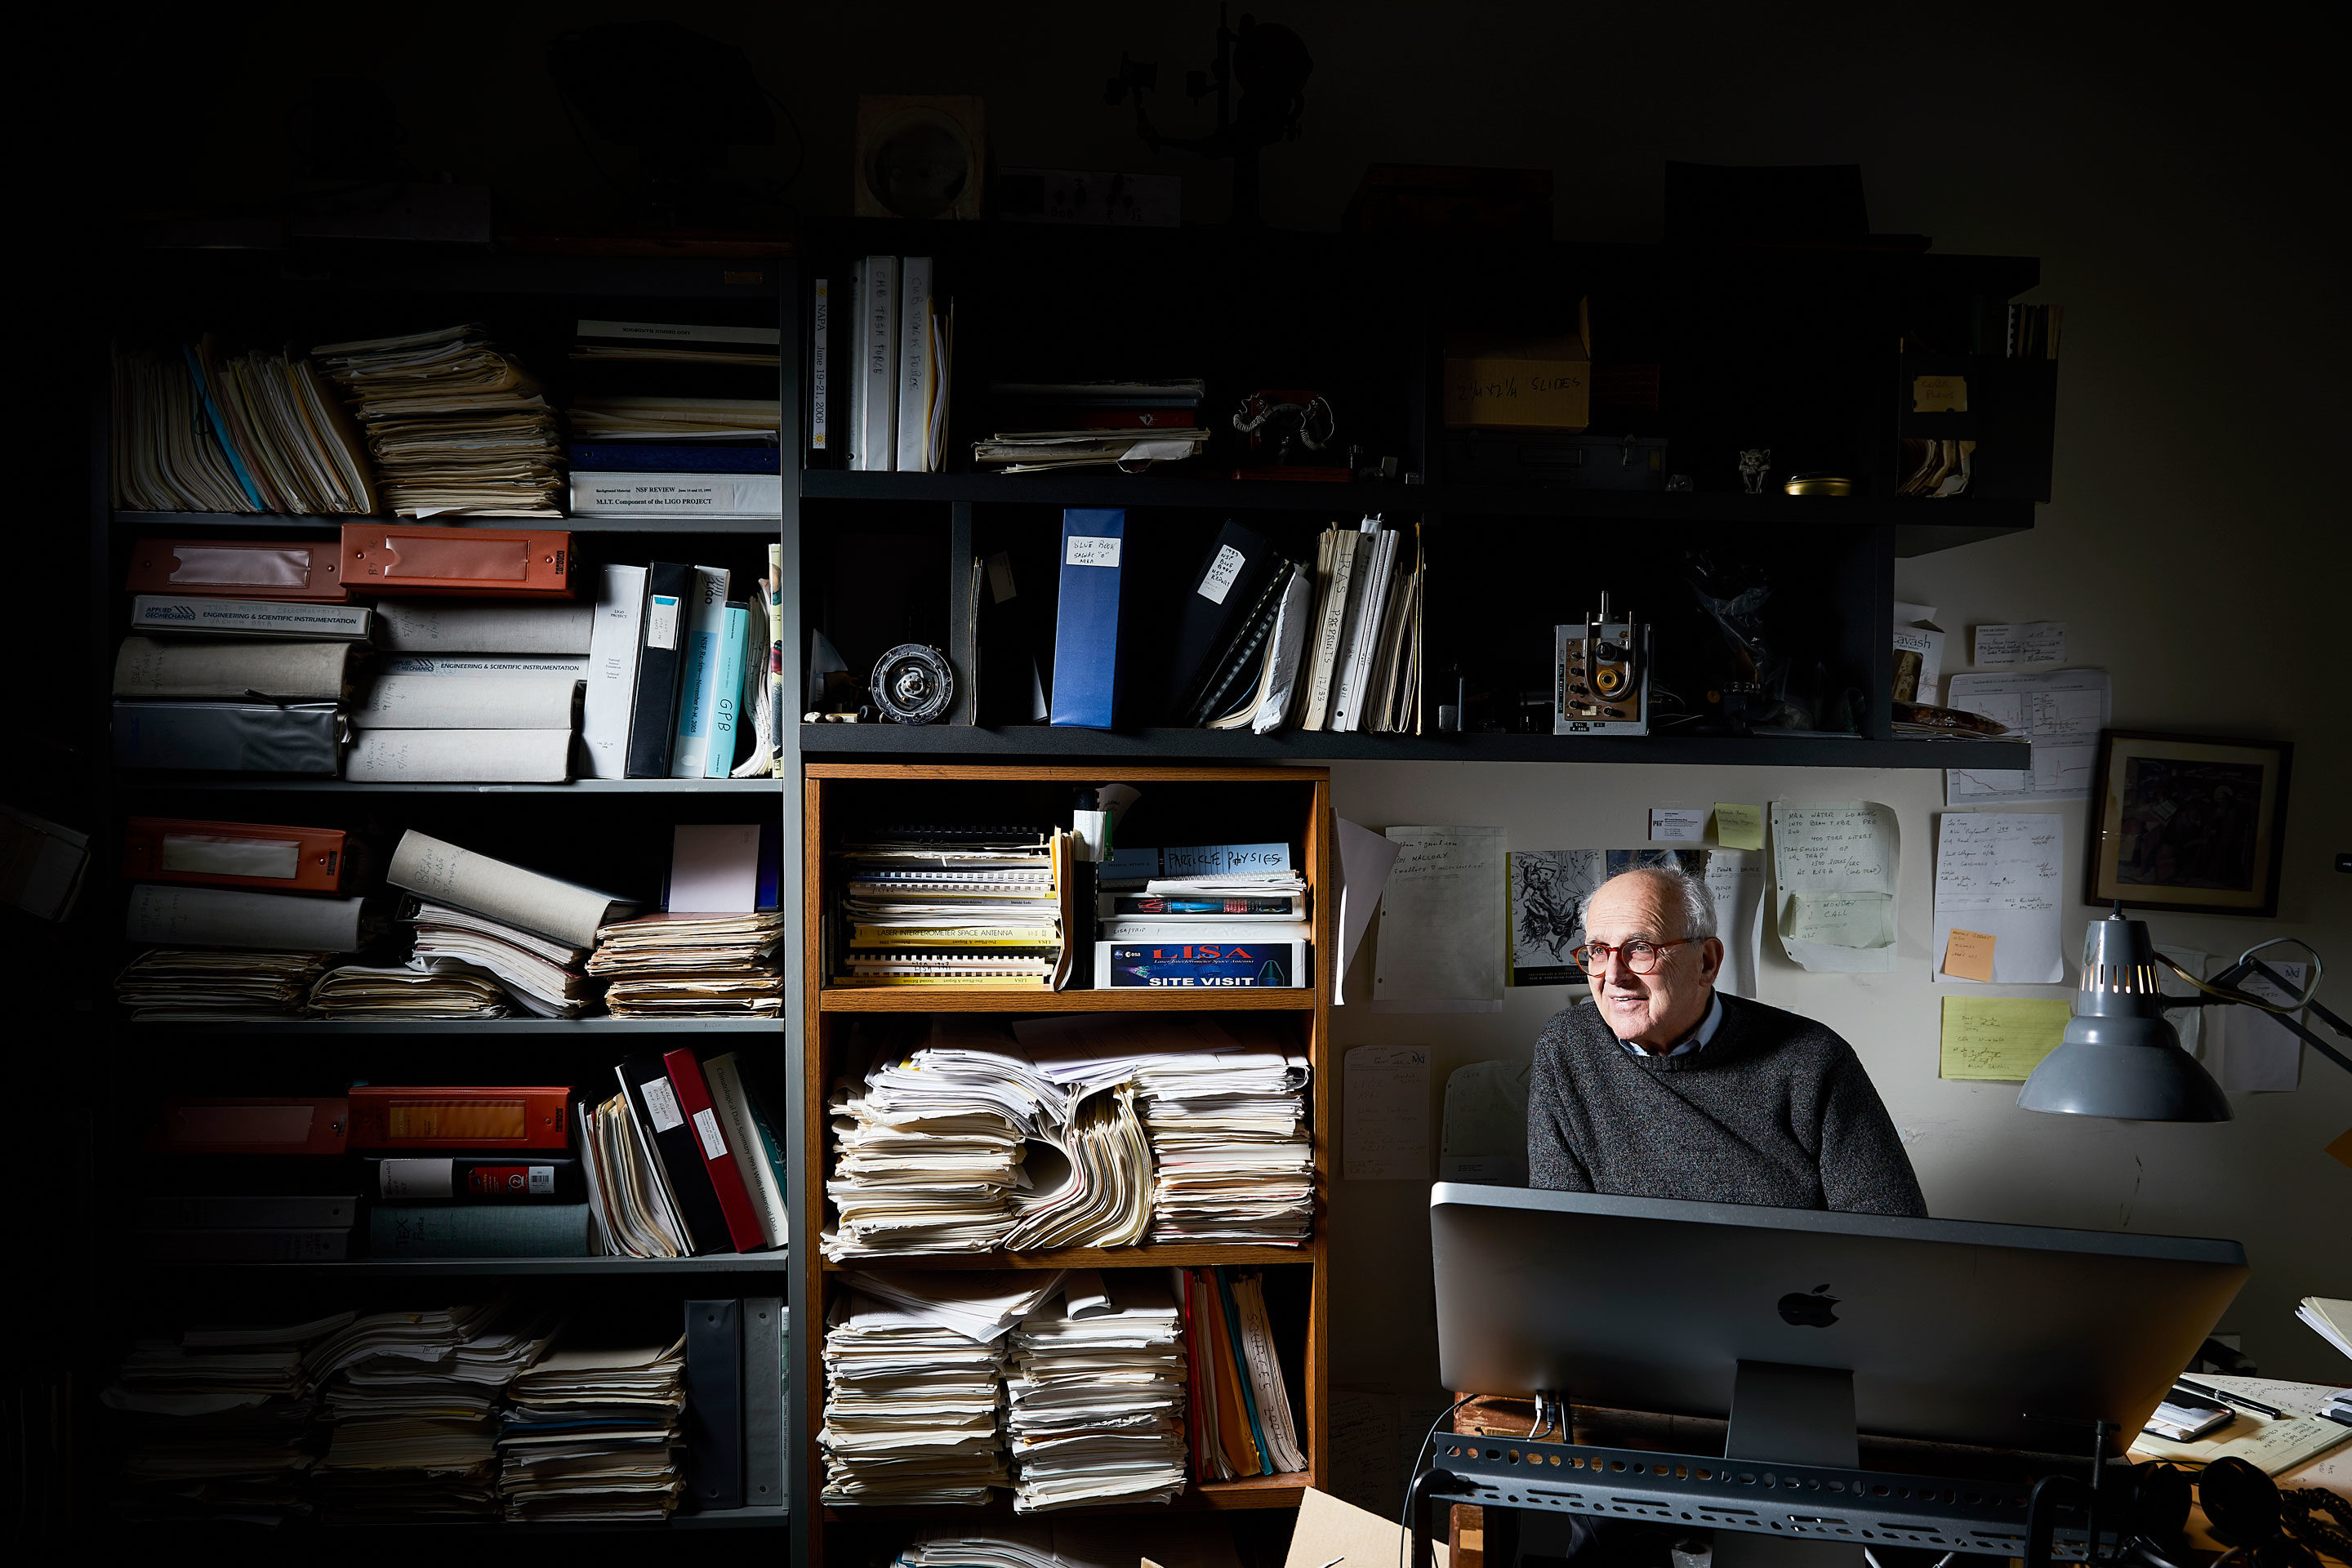 "Weiss in his office at MIT, where he doesn't like to work. ""Nobody thinks at their goddamn desk,"" he told the photographer. ""They only answer annoying emails and phone calls. I do my thinking while I'm working with my hands in my electronics lab or on a lathe in the machine shop."" (Editor's note: The phone numbers in this photograph were blurred to protect privacy.)"